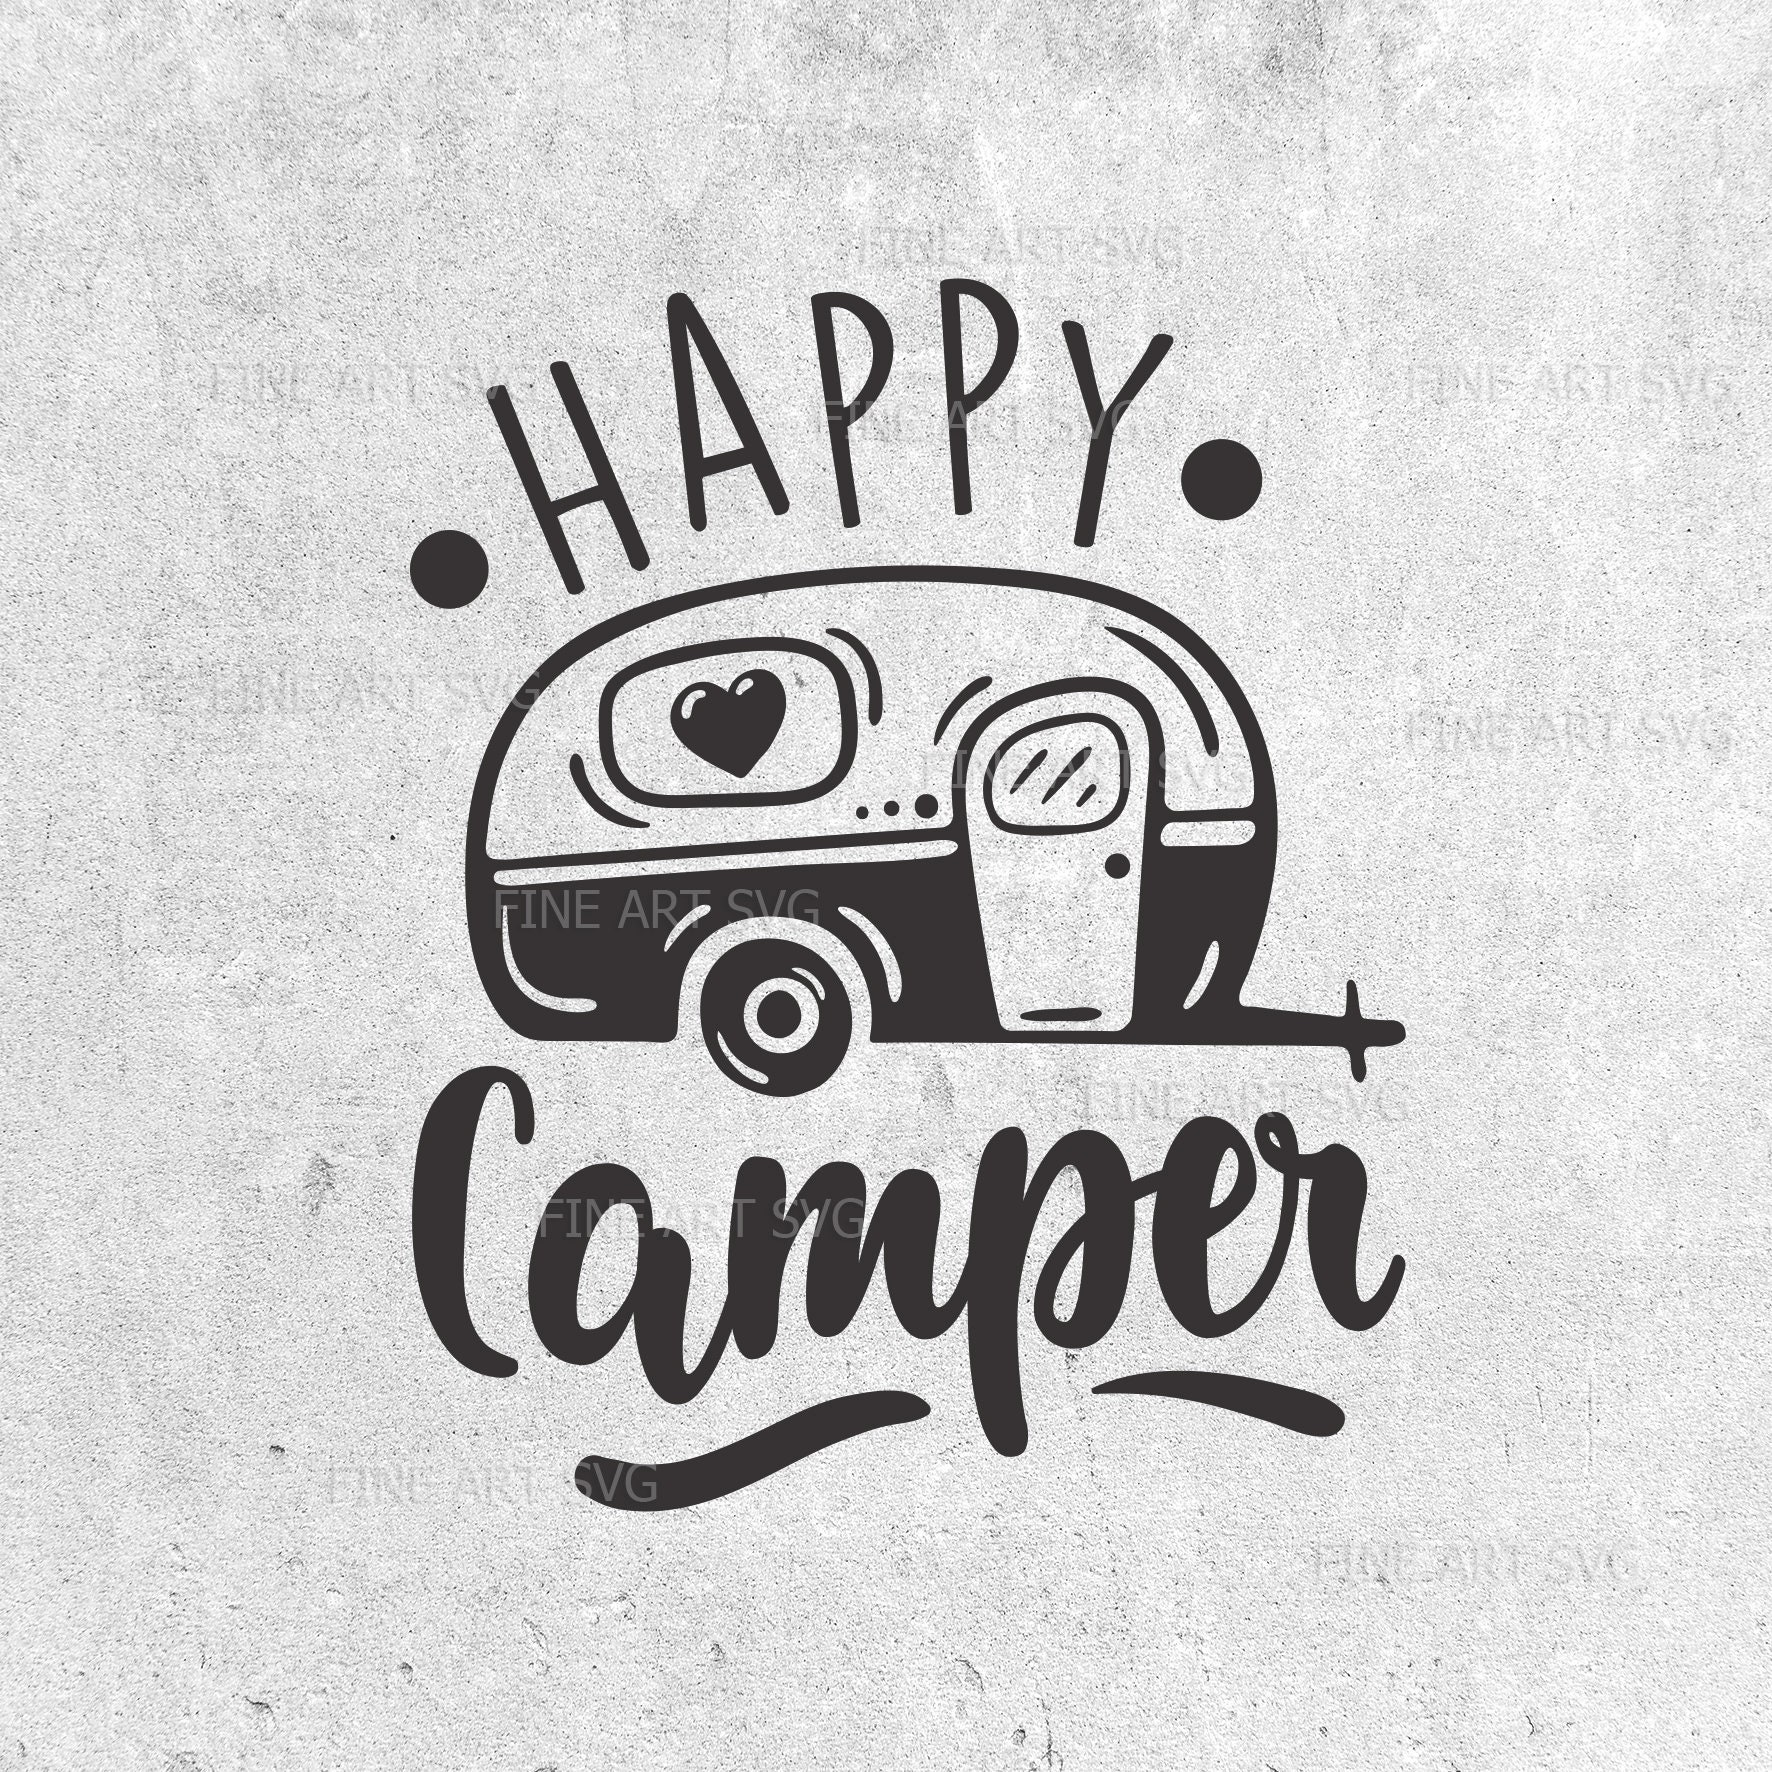 Happy camper svg Camping svg Travel svg Camping quote svg ...